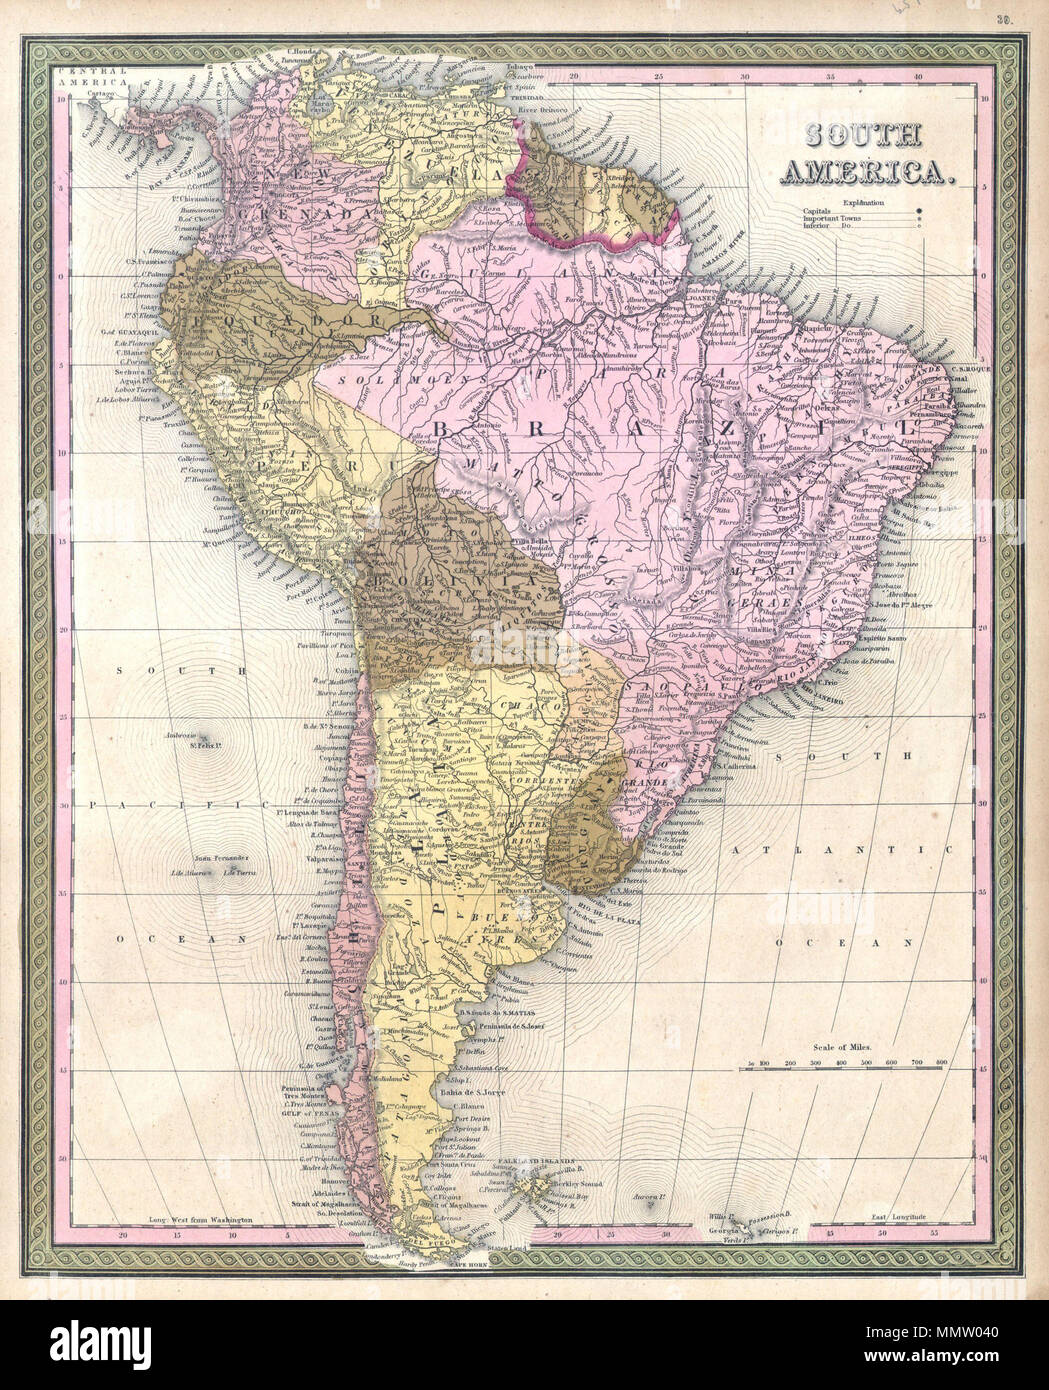 Central And South America Map Stock Photos & Central And South ...